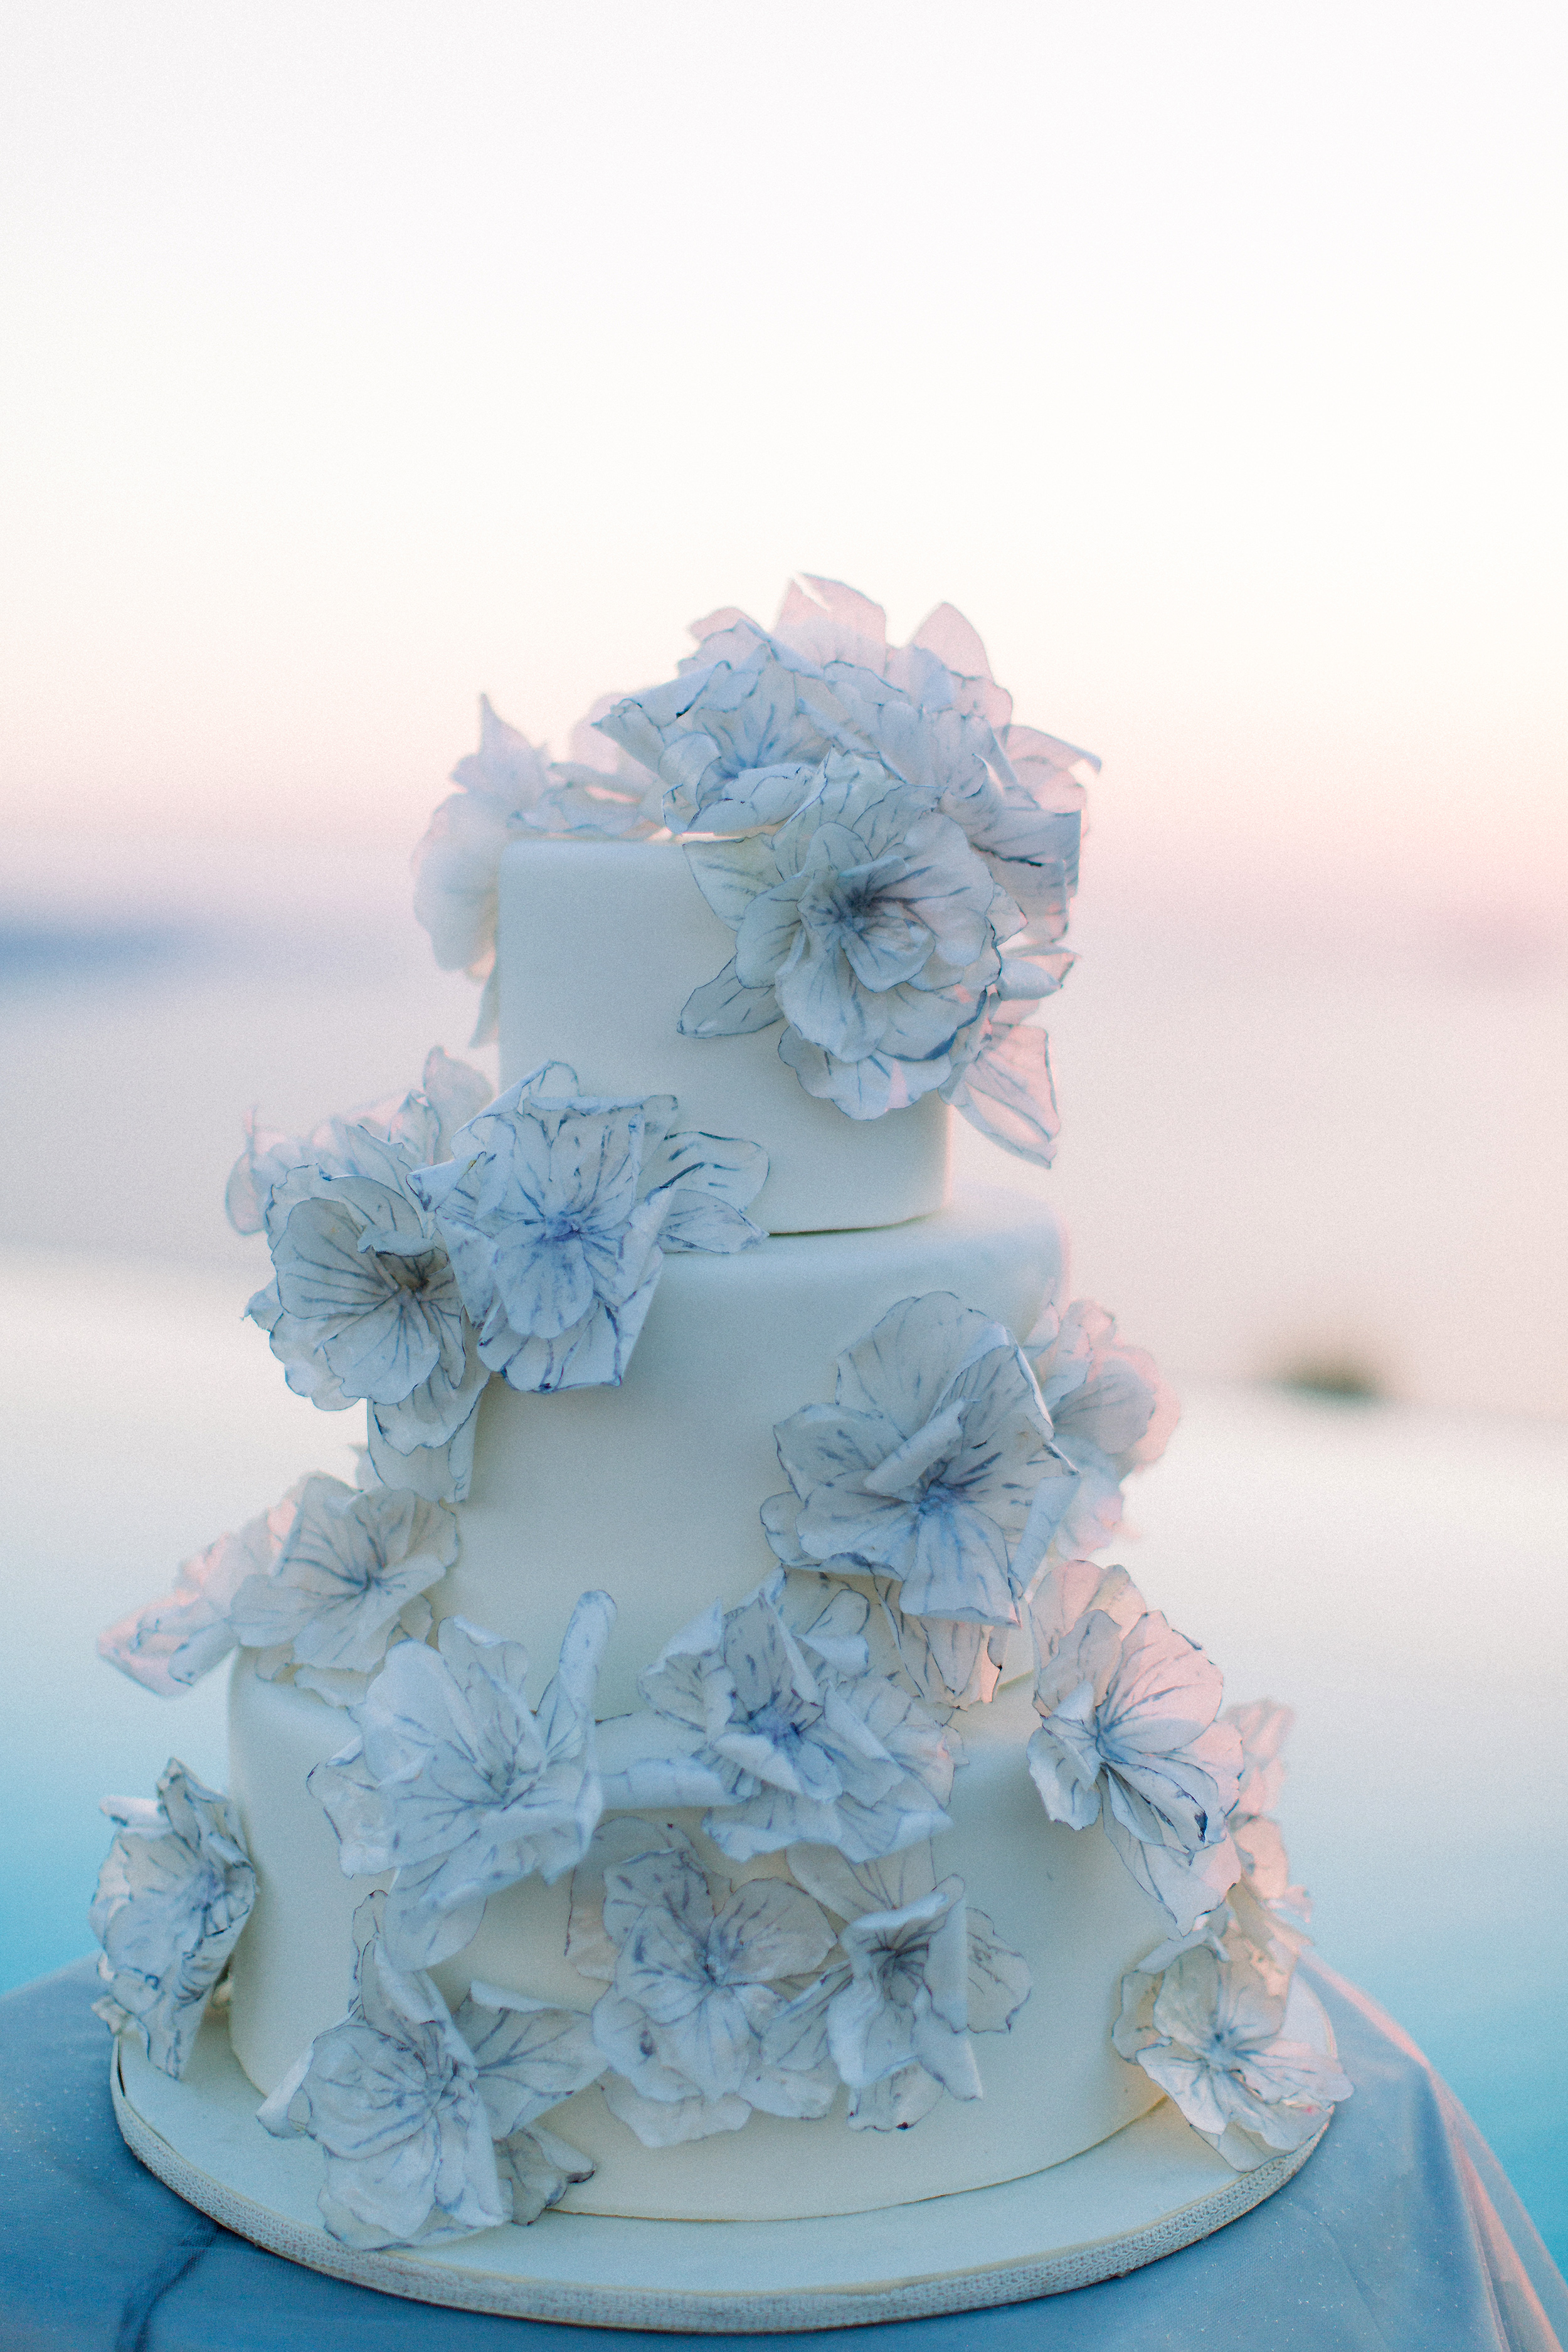 angie prayogo greece wedding cake with flowers